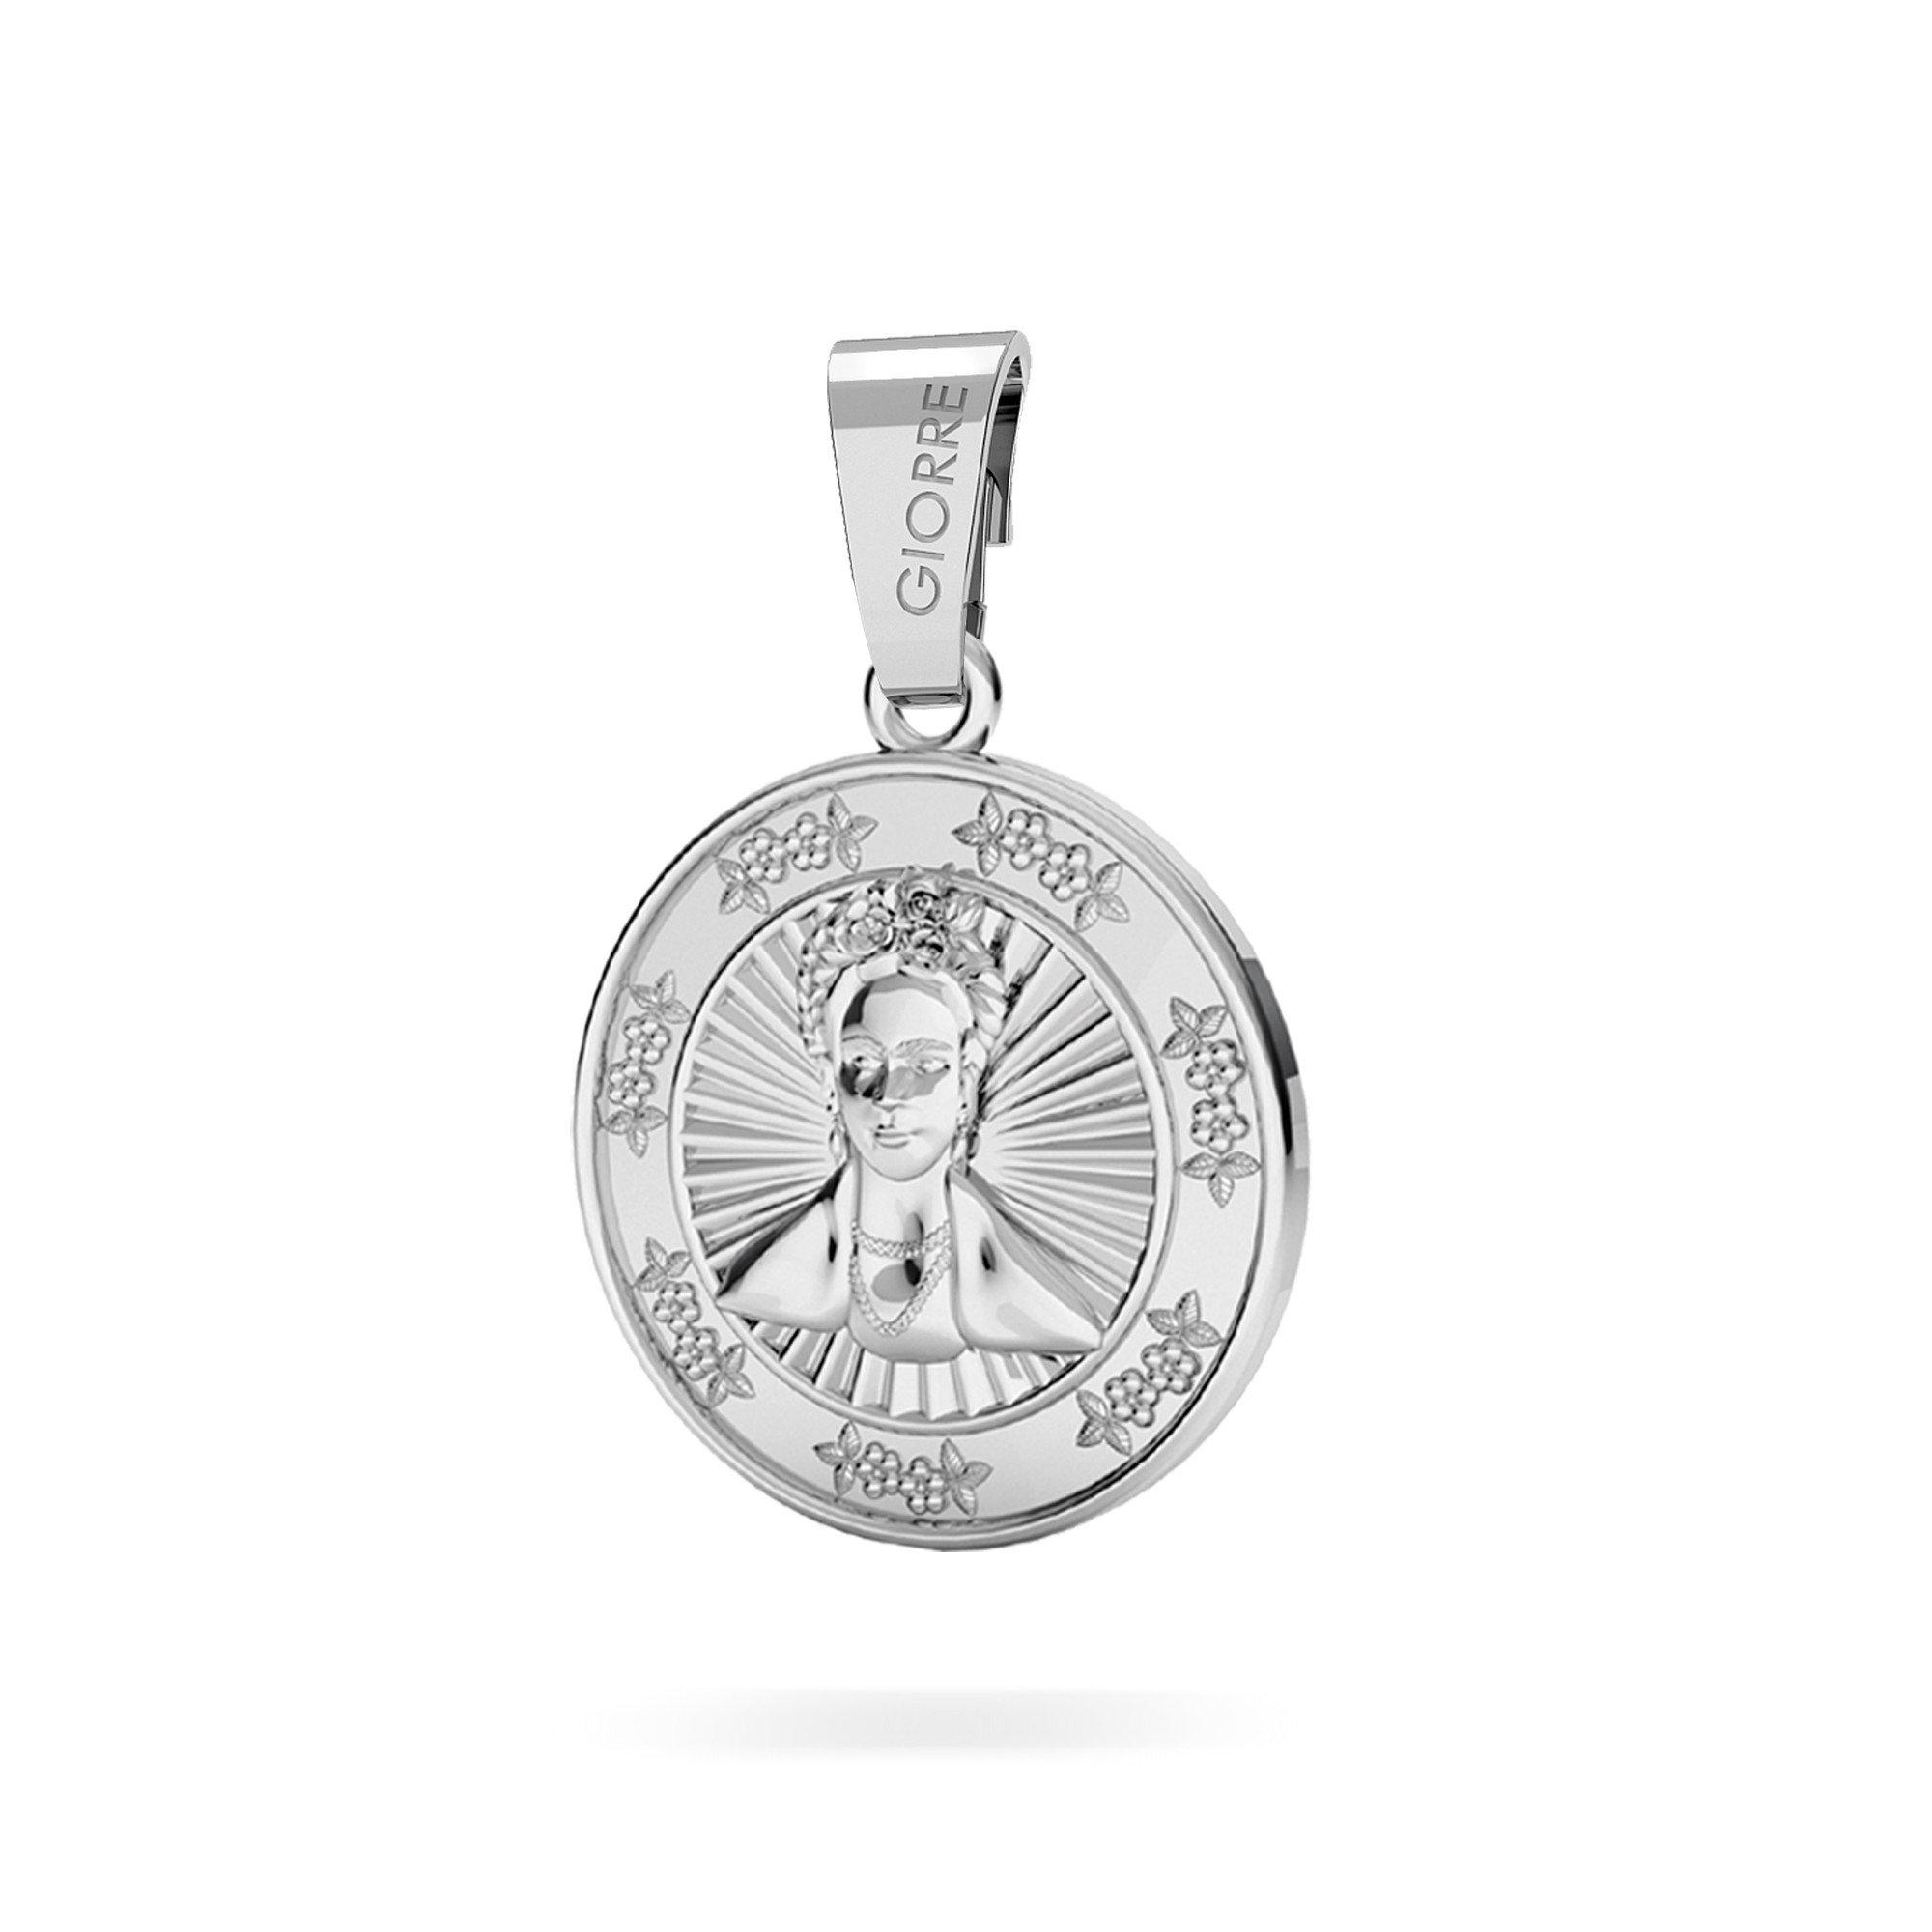 Coin pendant charms bead sterling silver